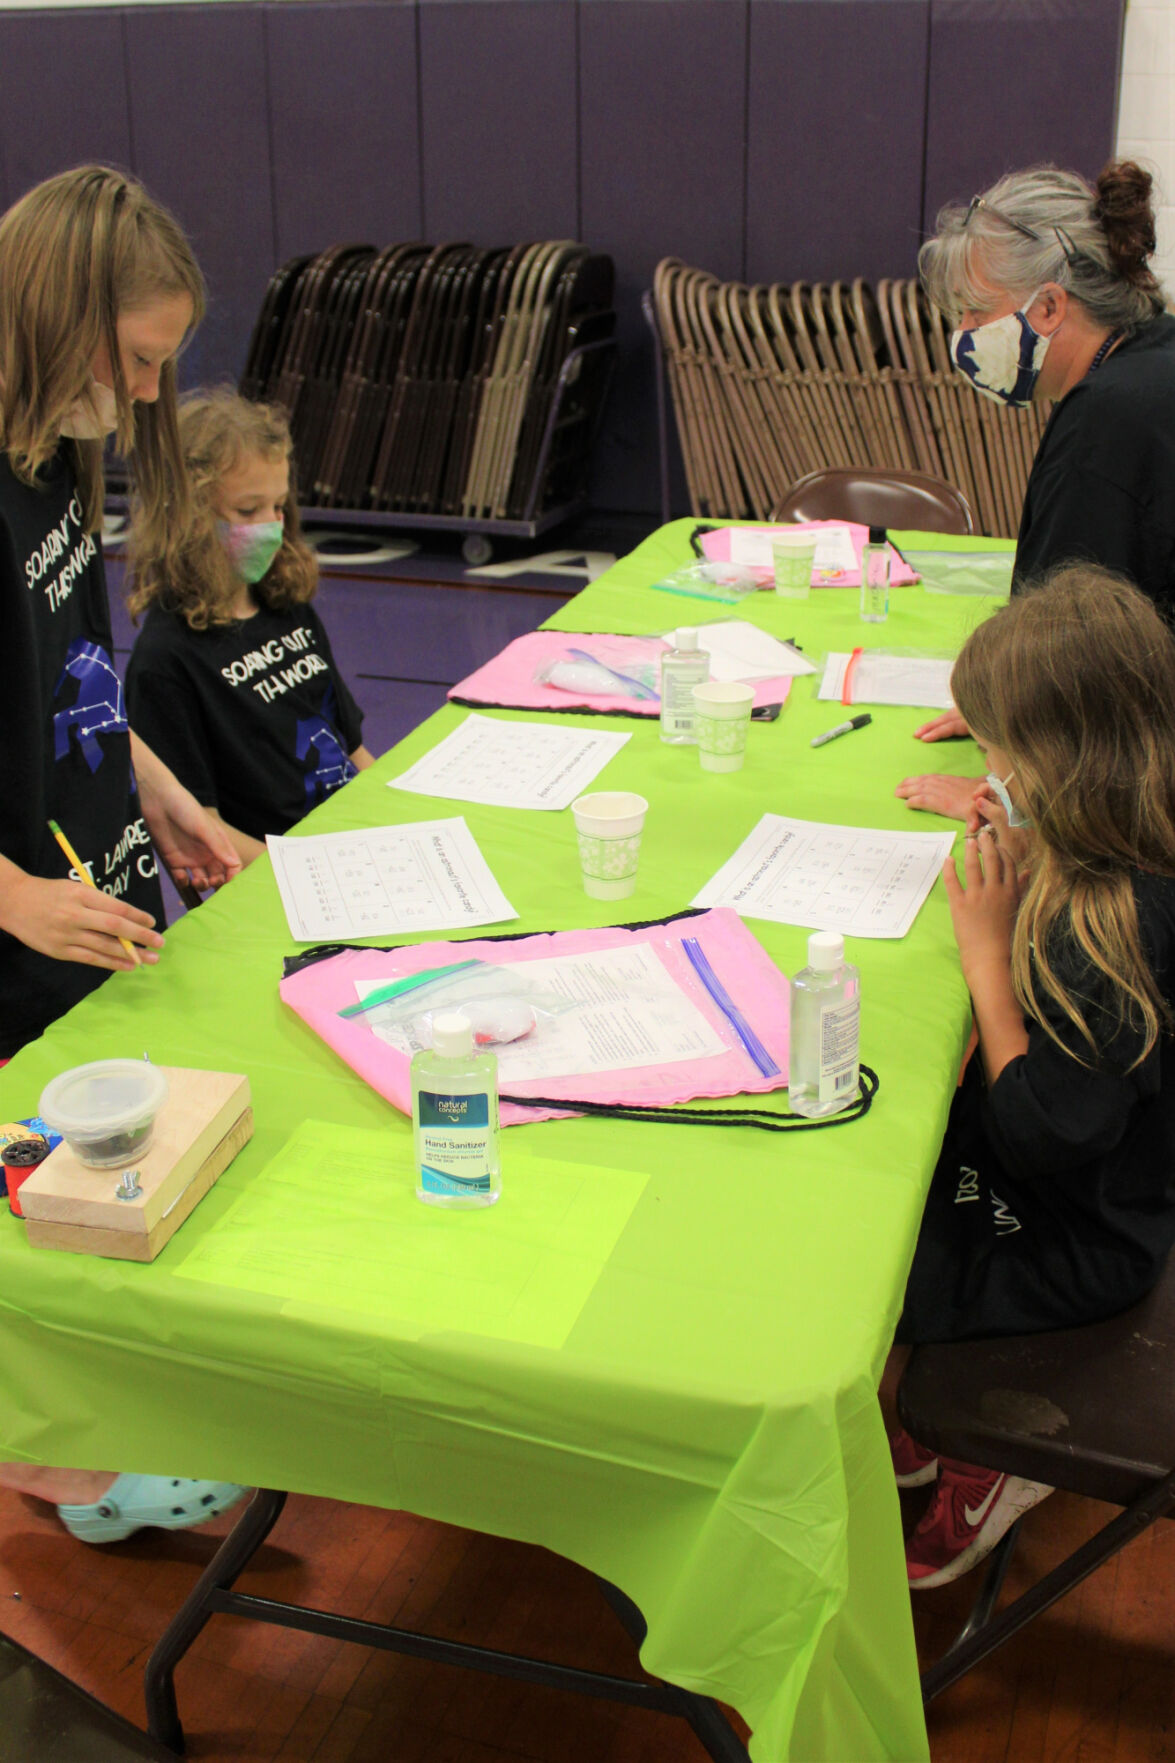 Day Camp offers Girl Scouts experiences, badges